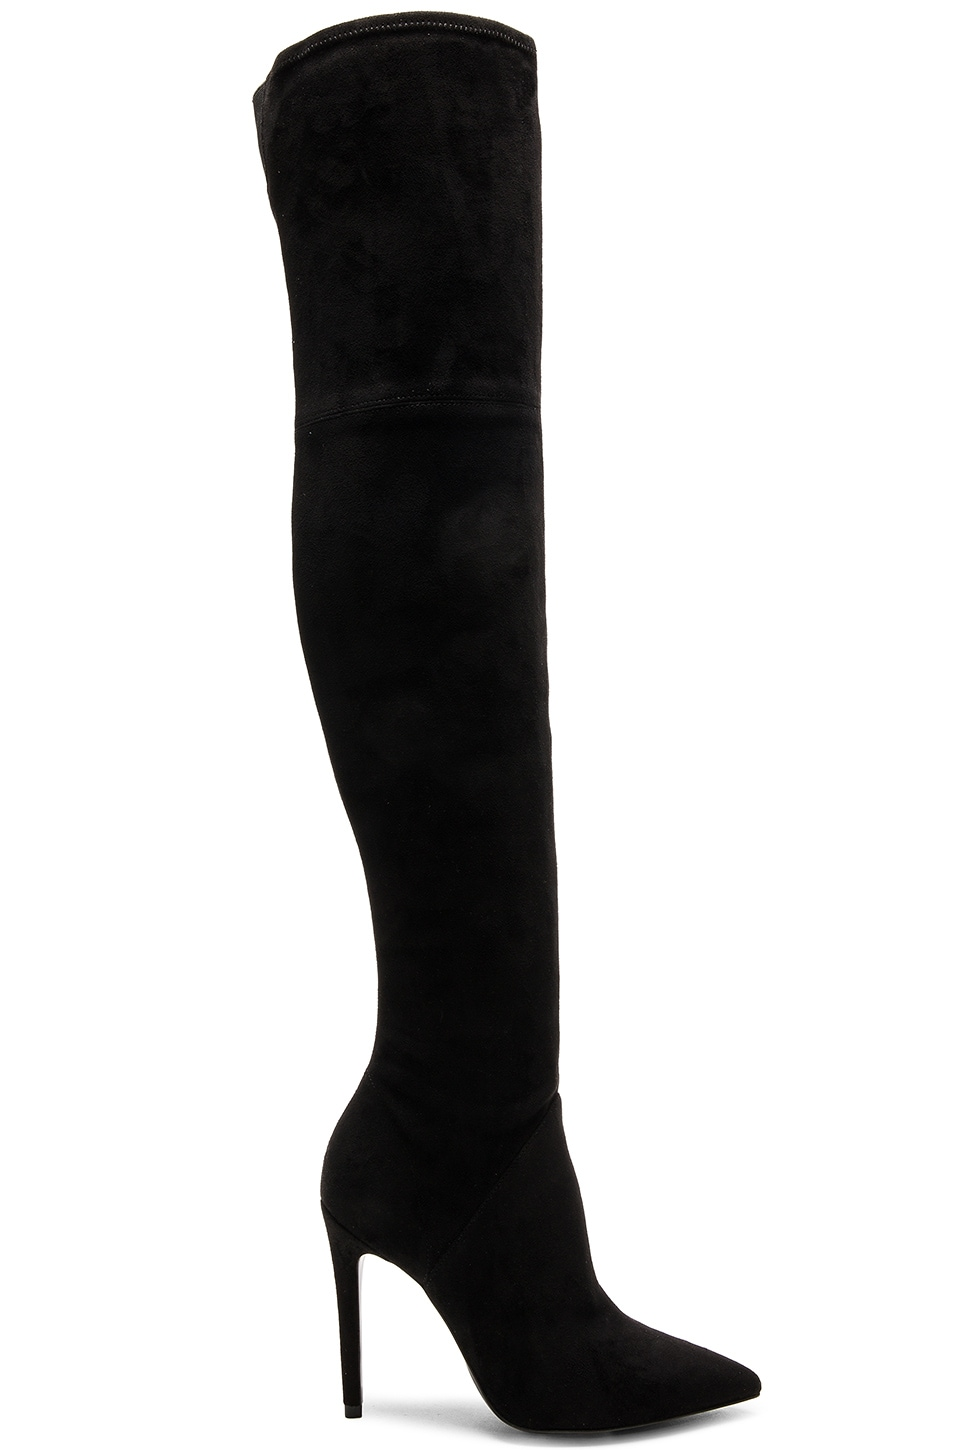 0dcddbe5e86 KENDALL + KYLIE Ayla 2 Boot in Black Suede